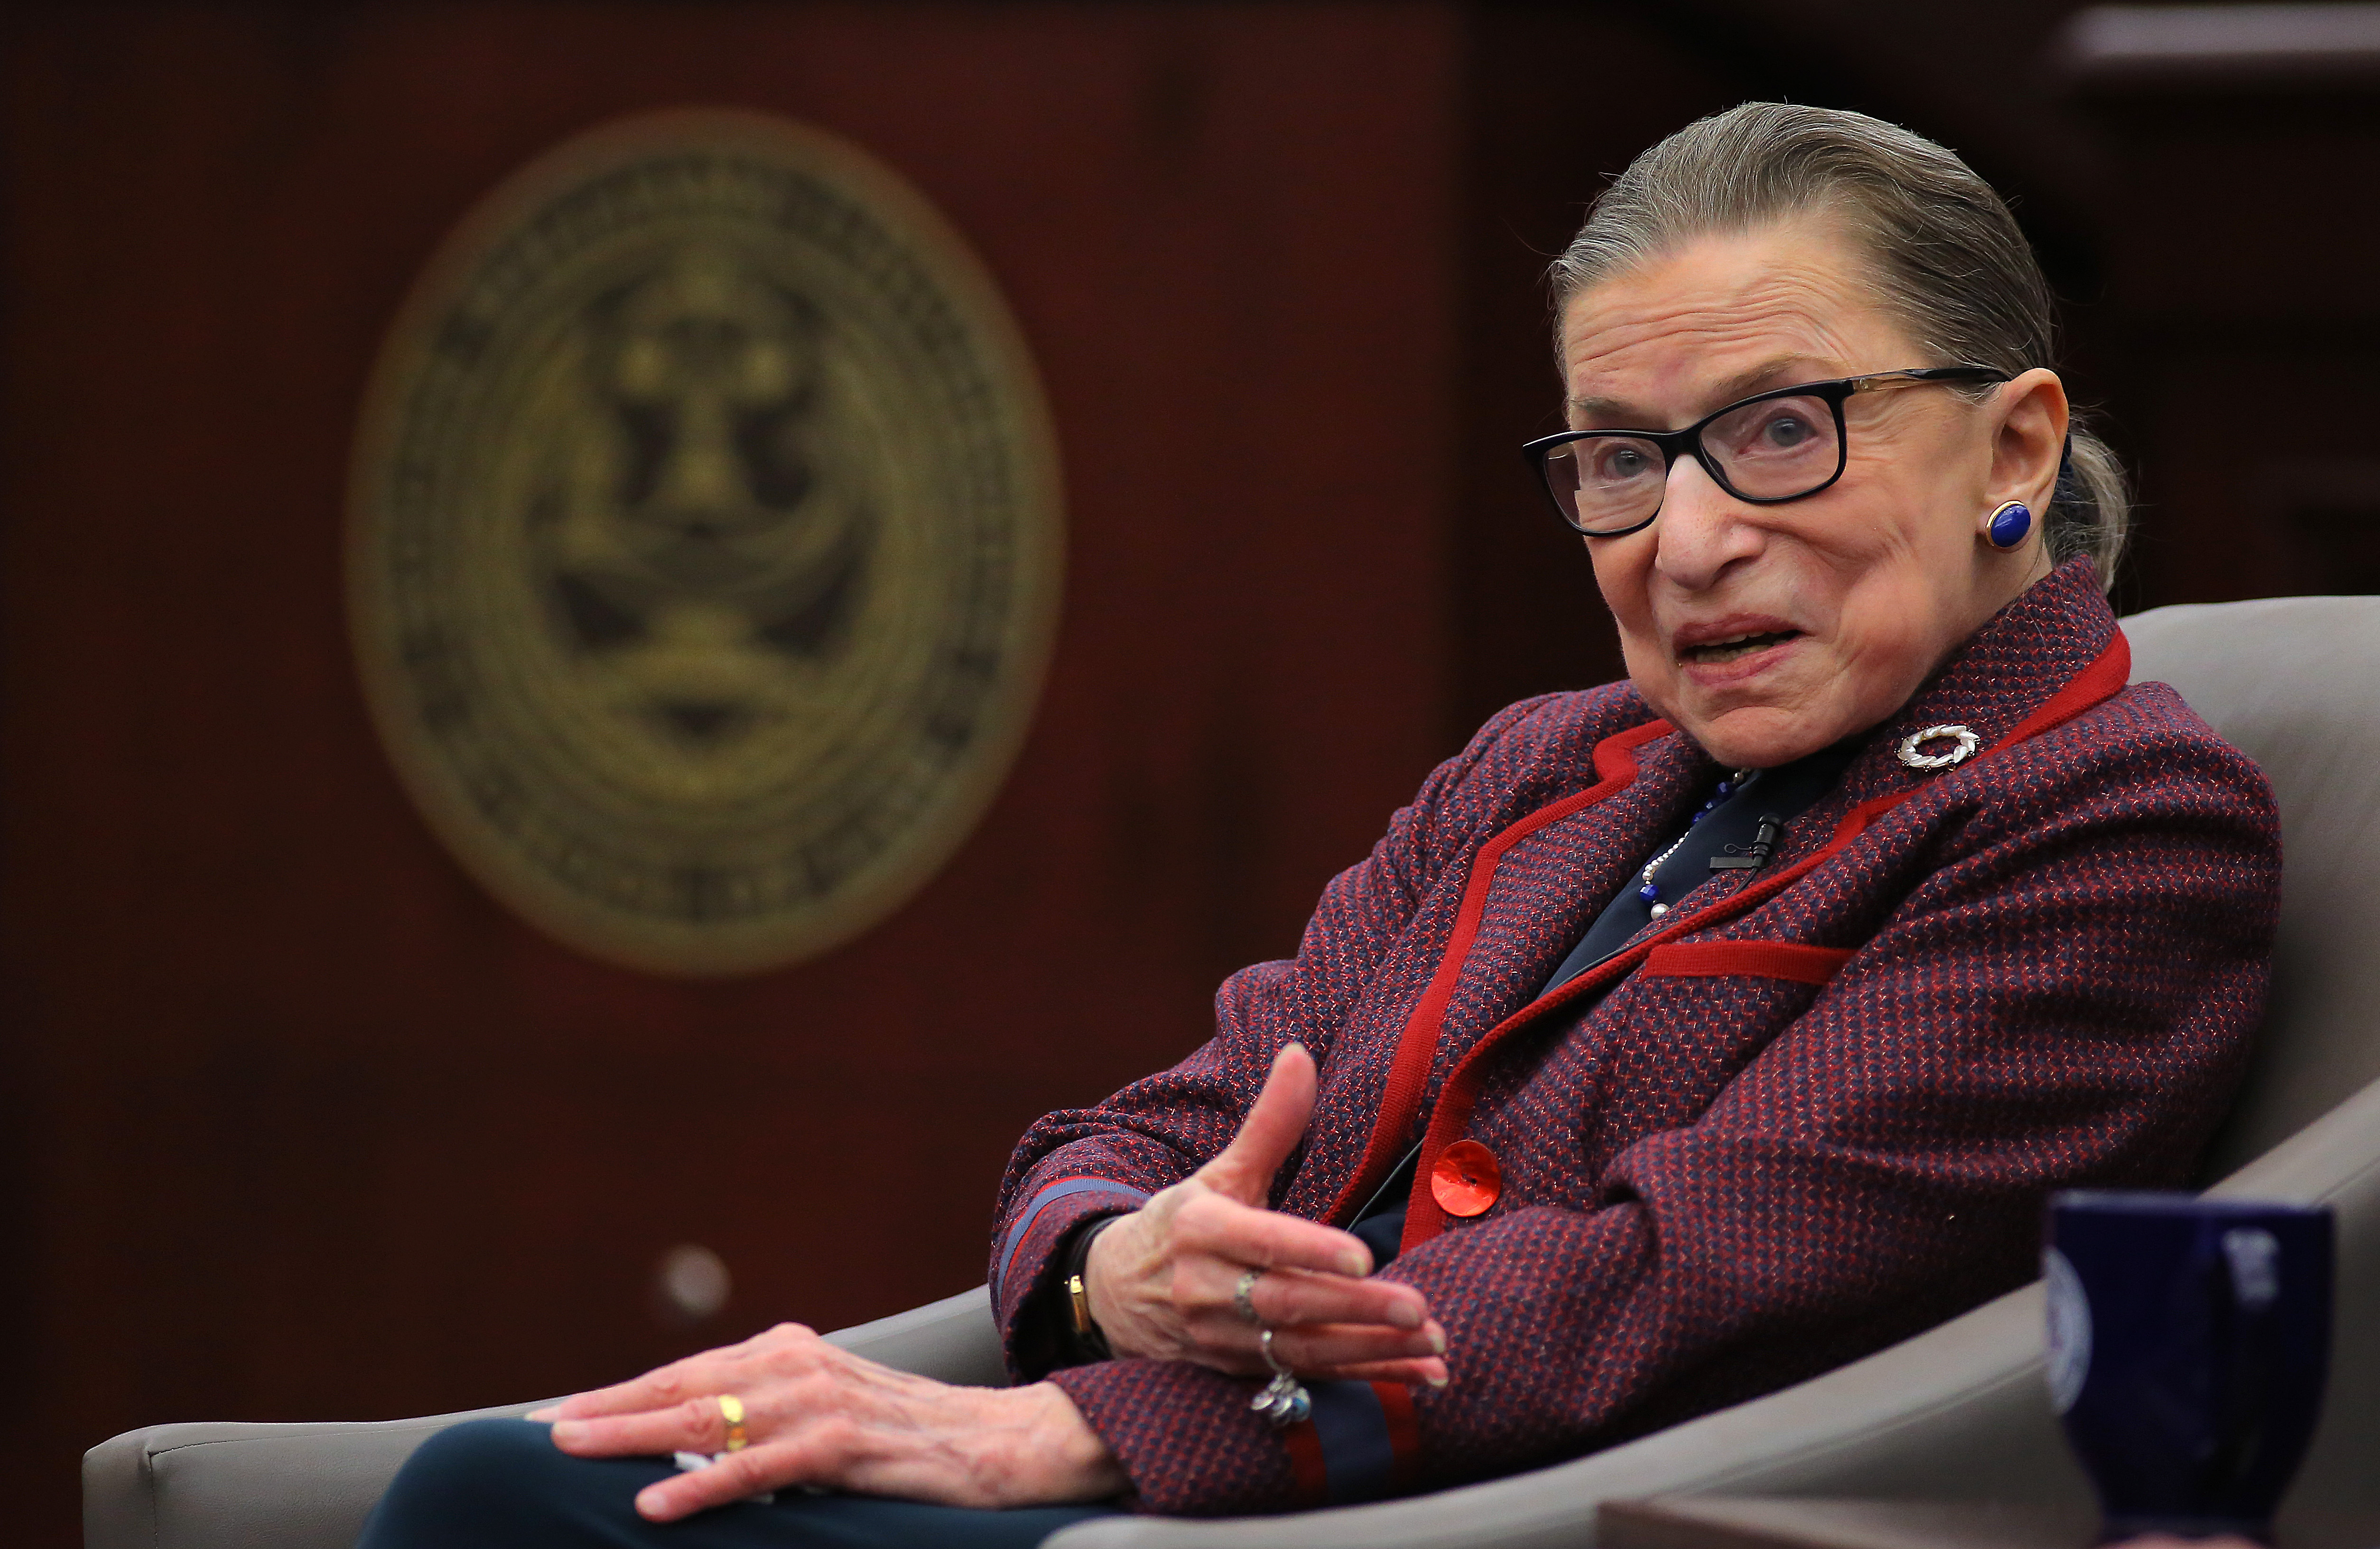 Supreme Court Justice Ruth Bader Ginsburg is recovering well from a fall